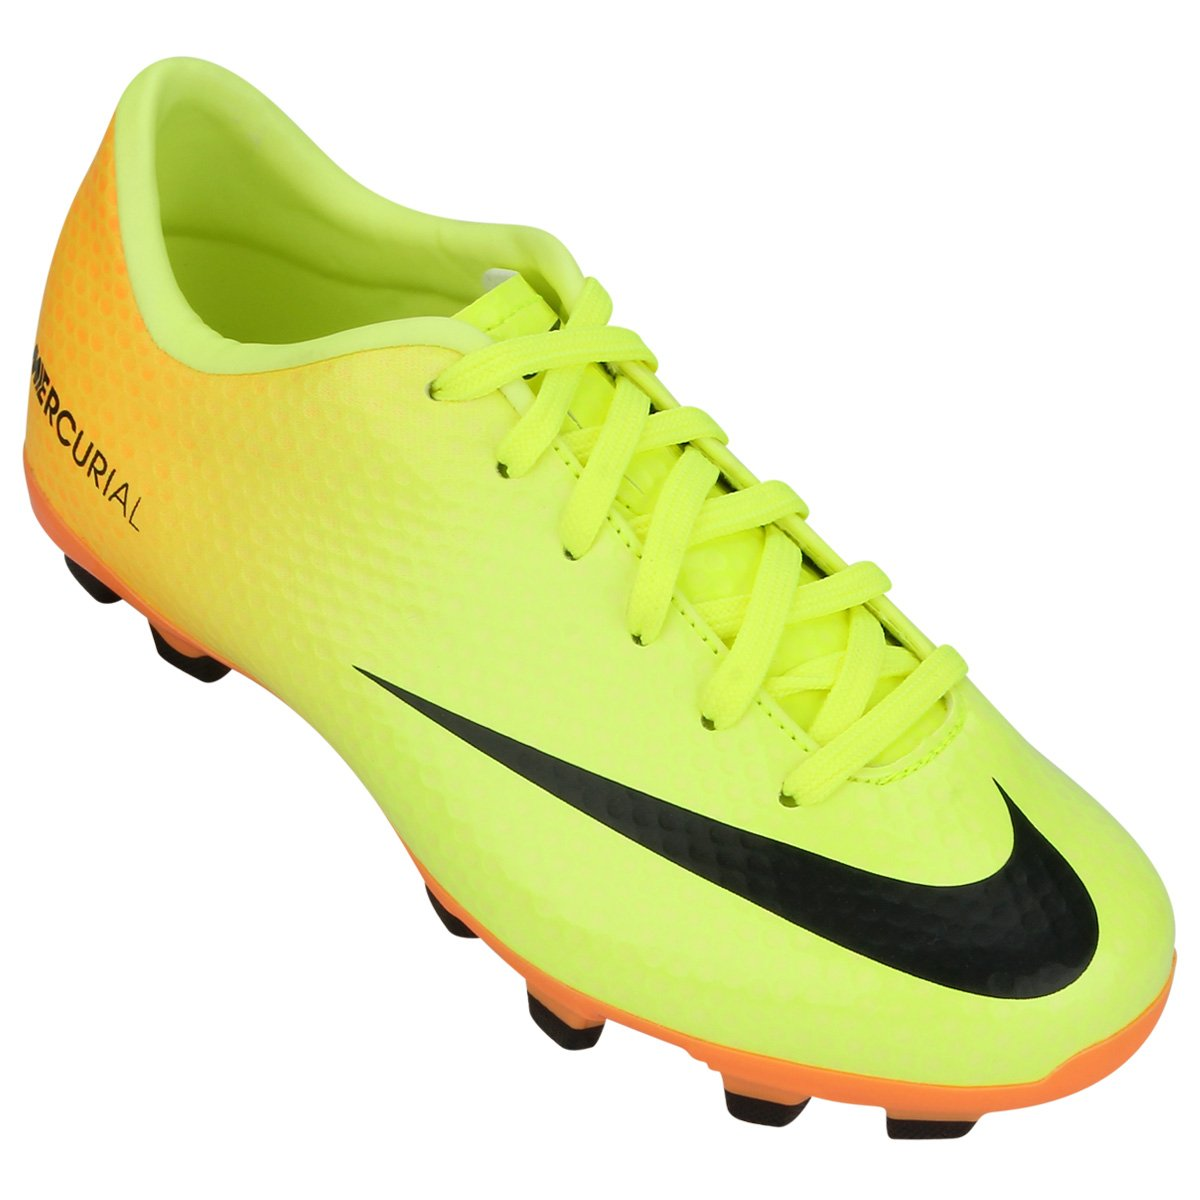 90189e7969aa6 ... purchase chuteira nike mercurial victory 4 fg emb infantil compre agora  netshoes 266fb 76637